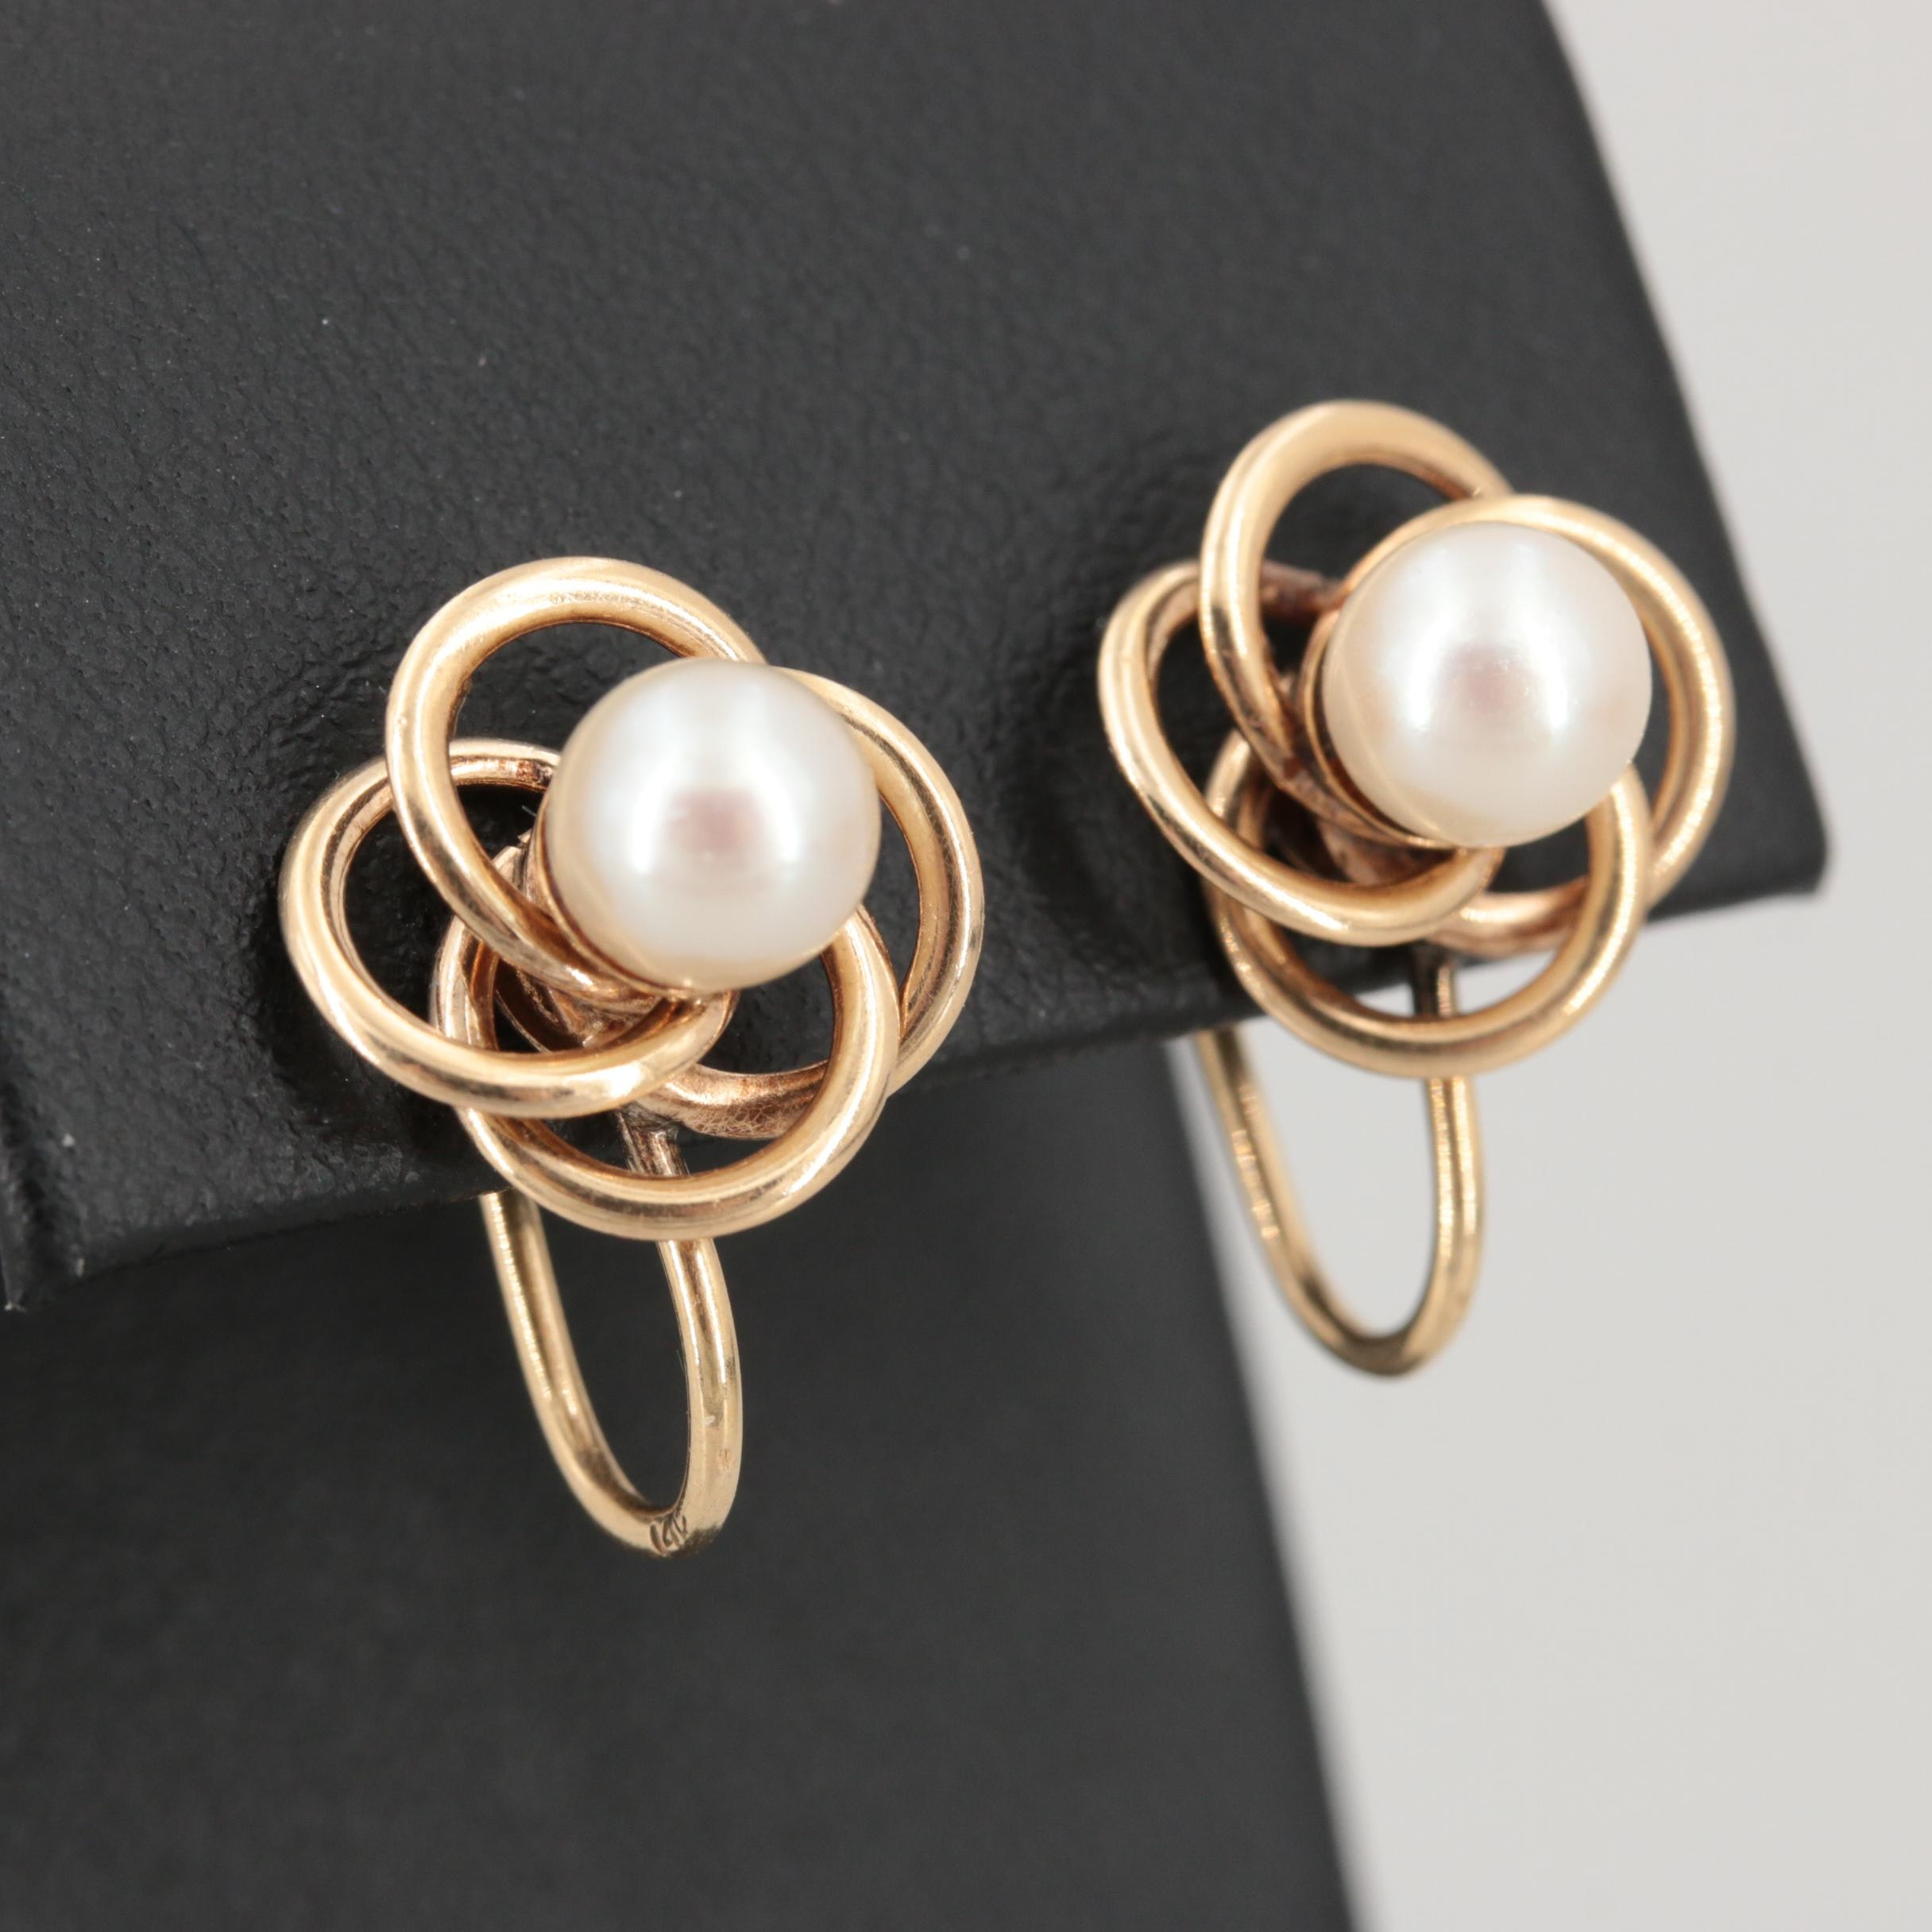 14K Yellow Gold Cultured Pearl Love Knot Earrings